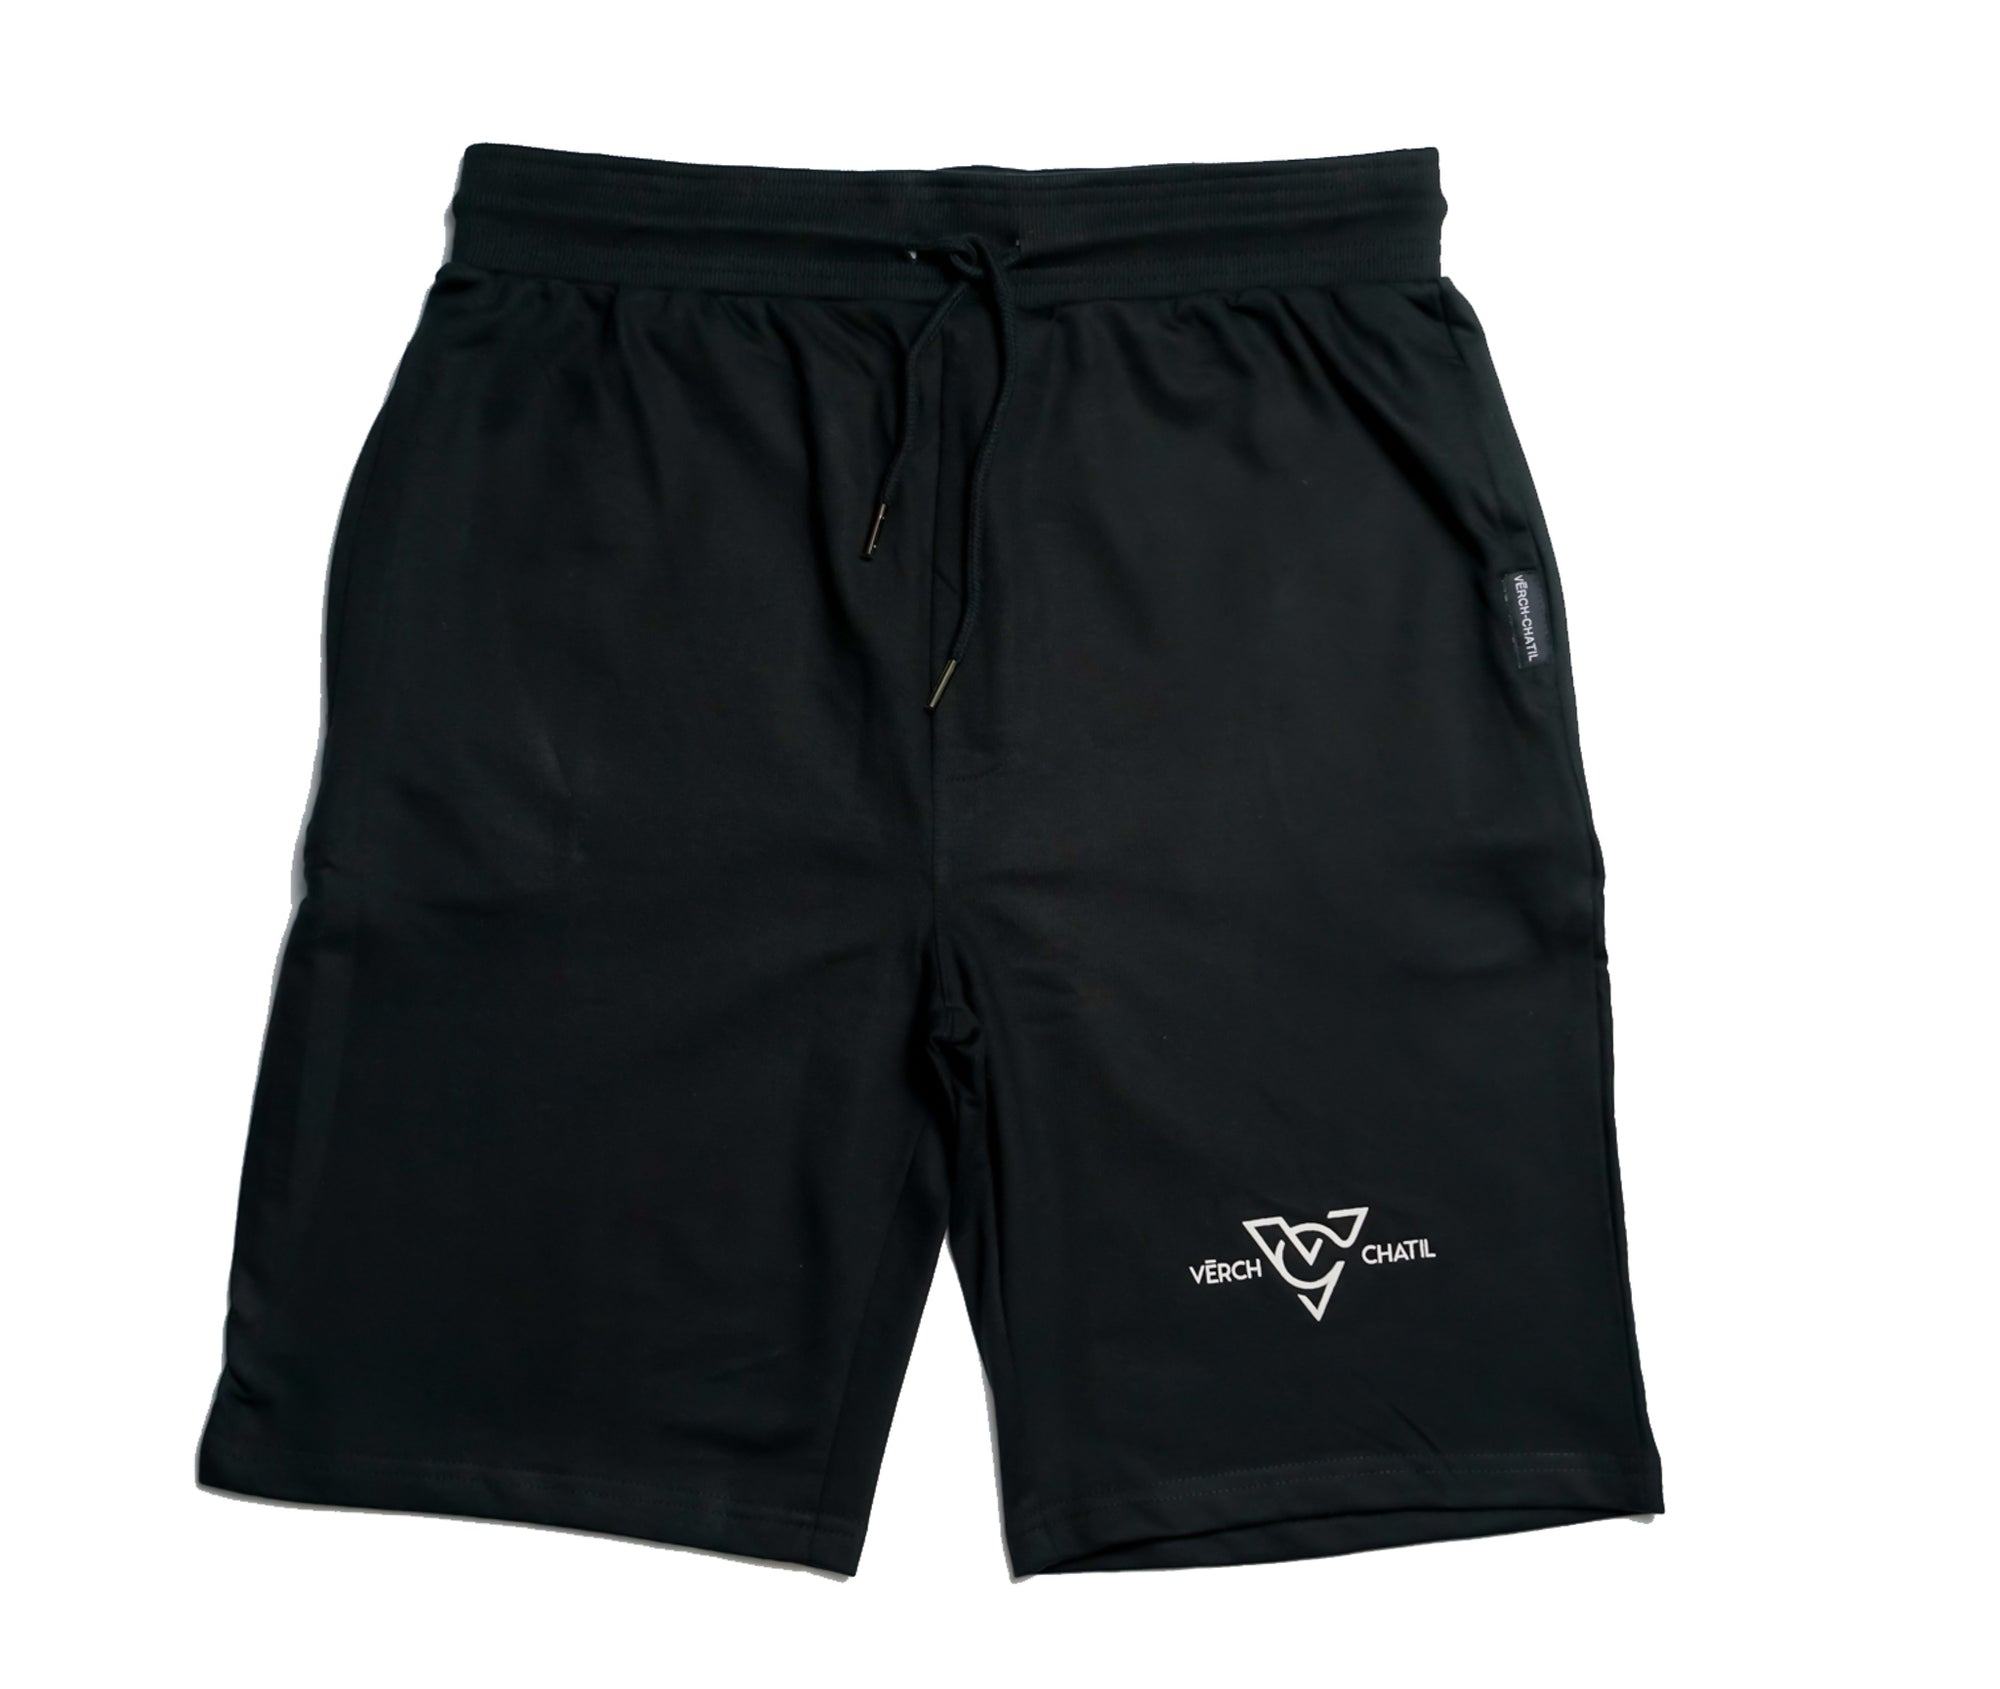 Verch Black Short Trunk